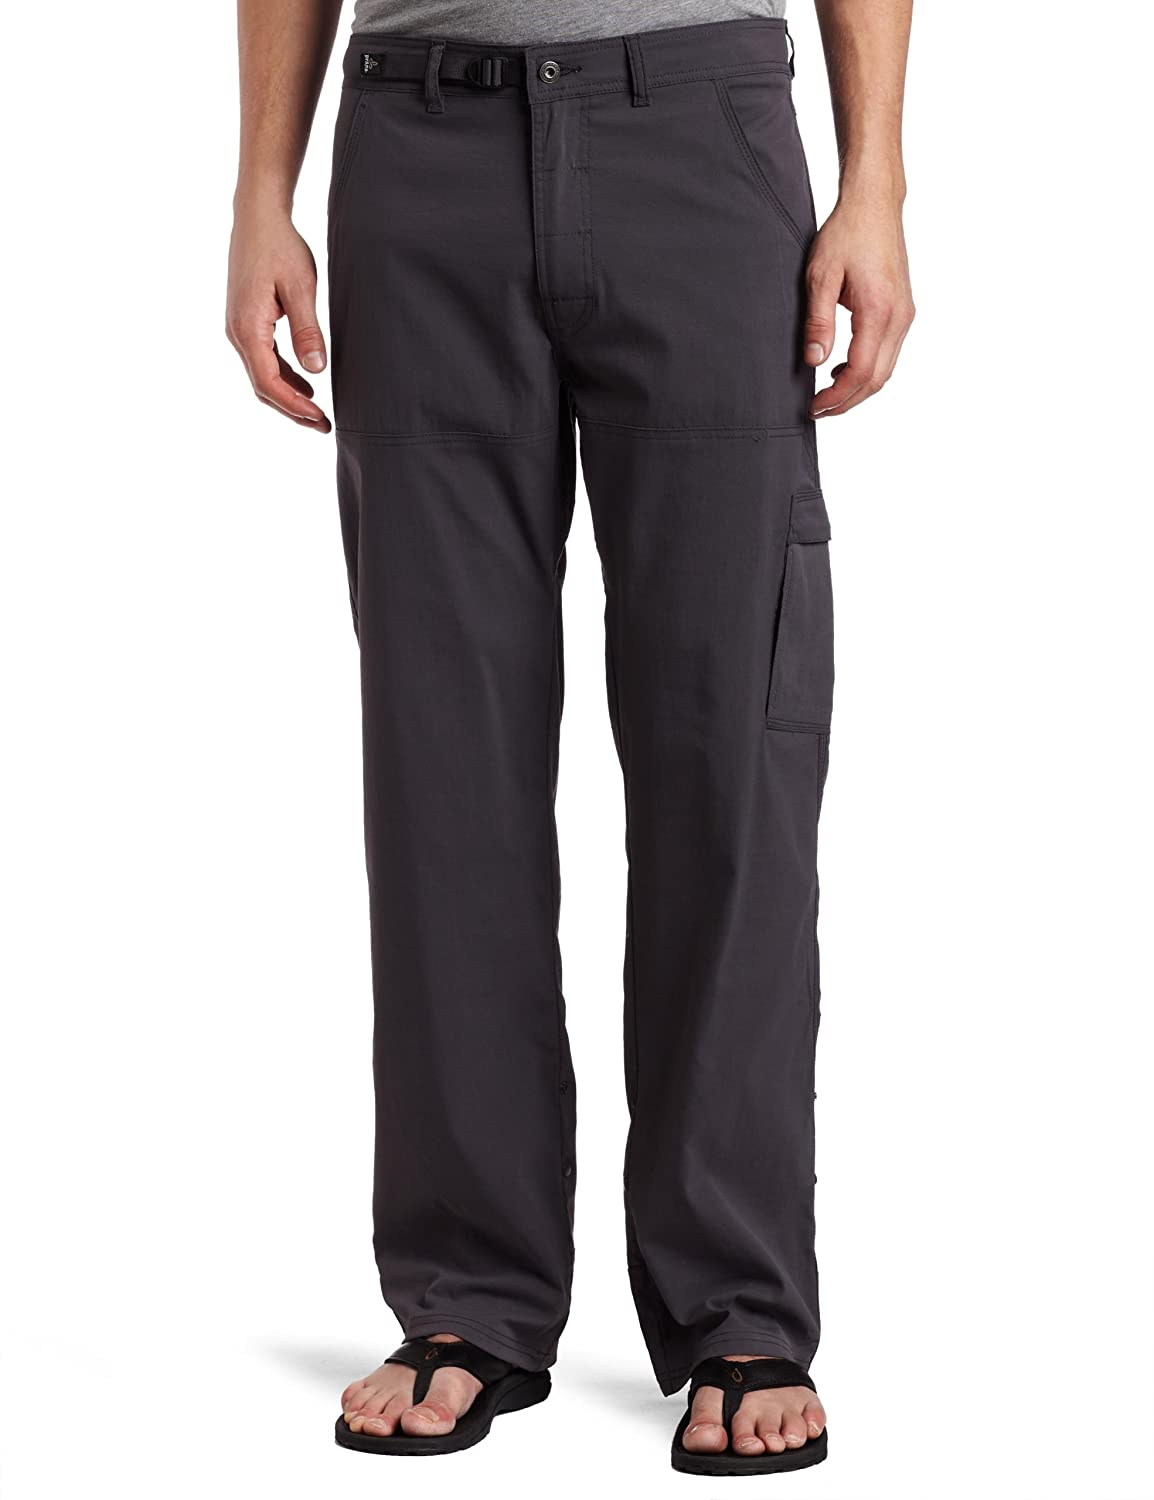 prAna Stretch Zion 28 Inseam